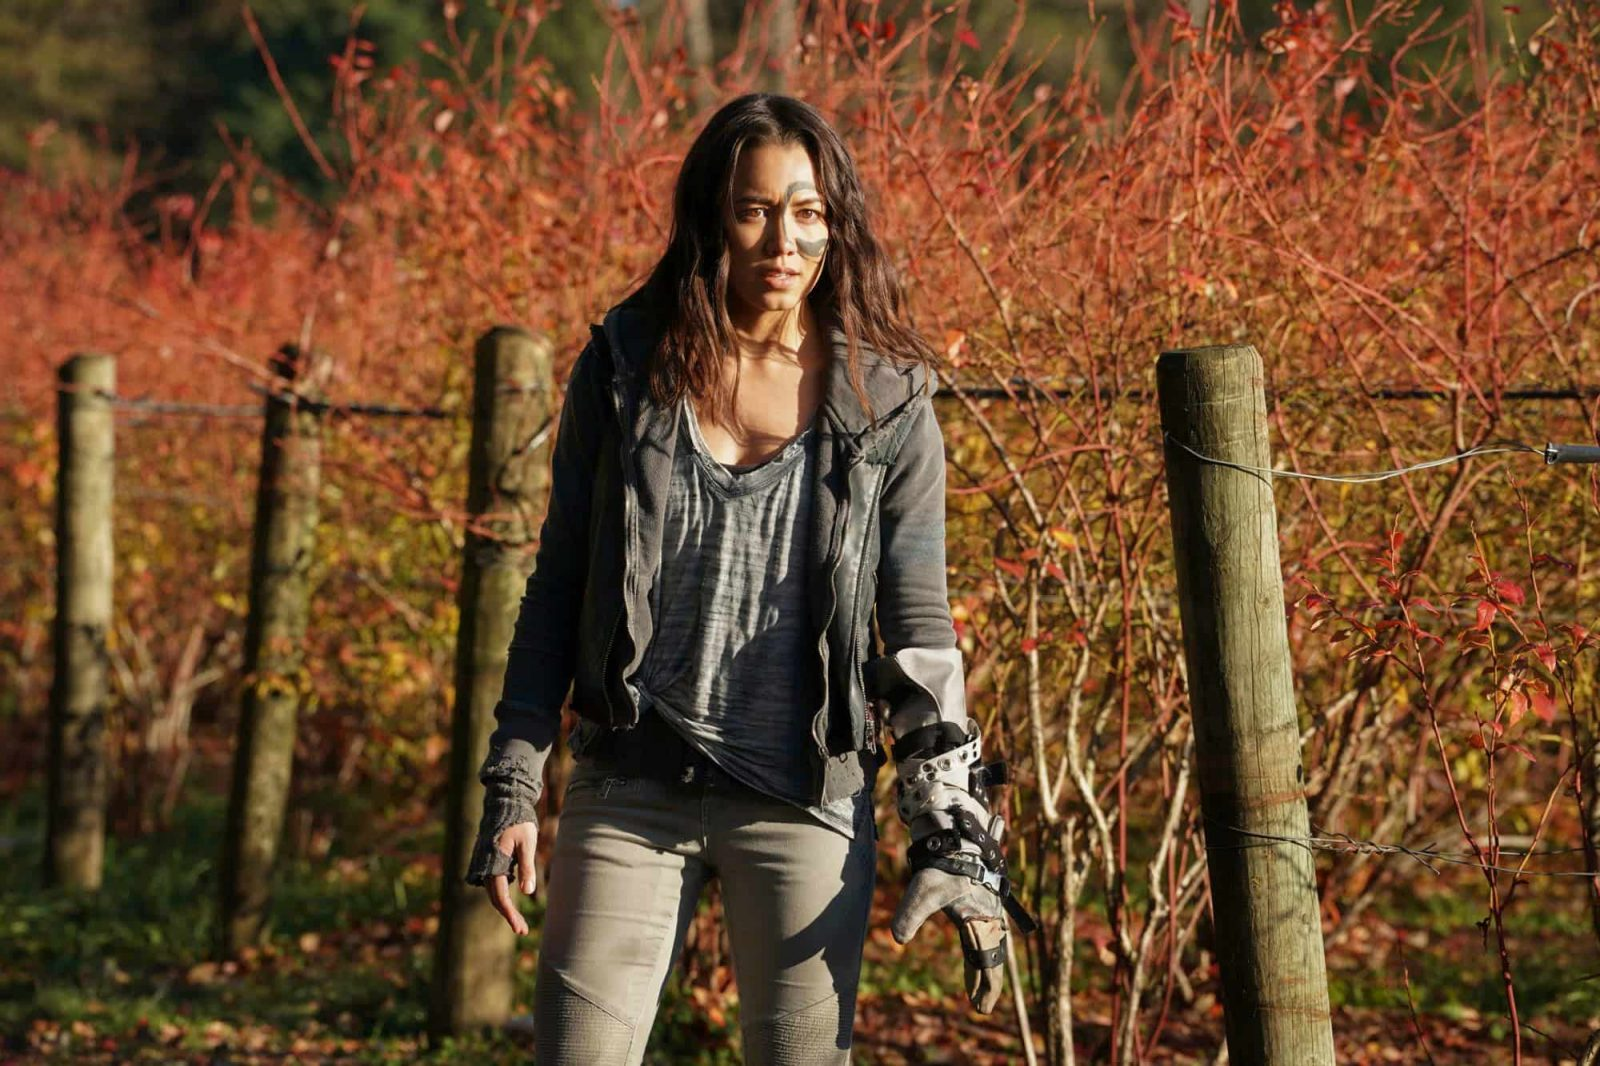 Luisa D'Oliveira como Emori en The 100 6x08 The Old Man and the Anomaly